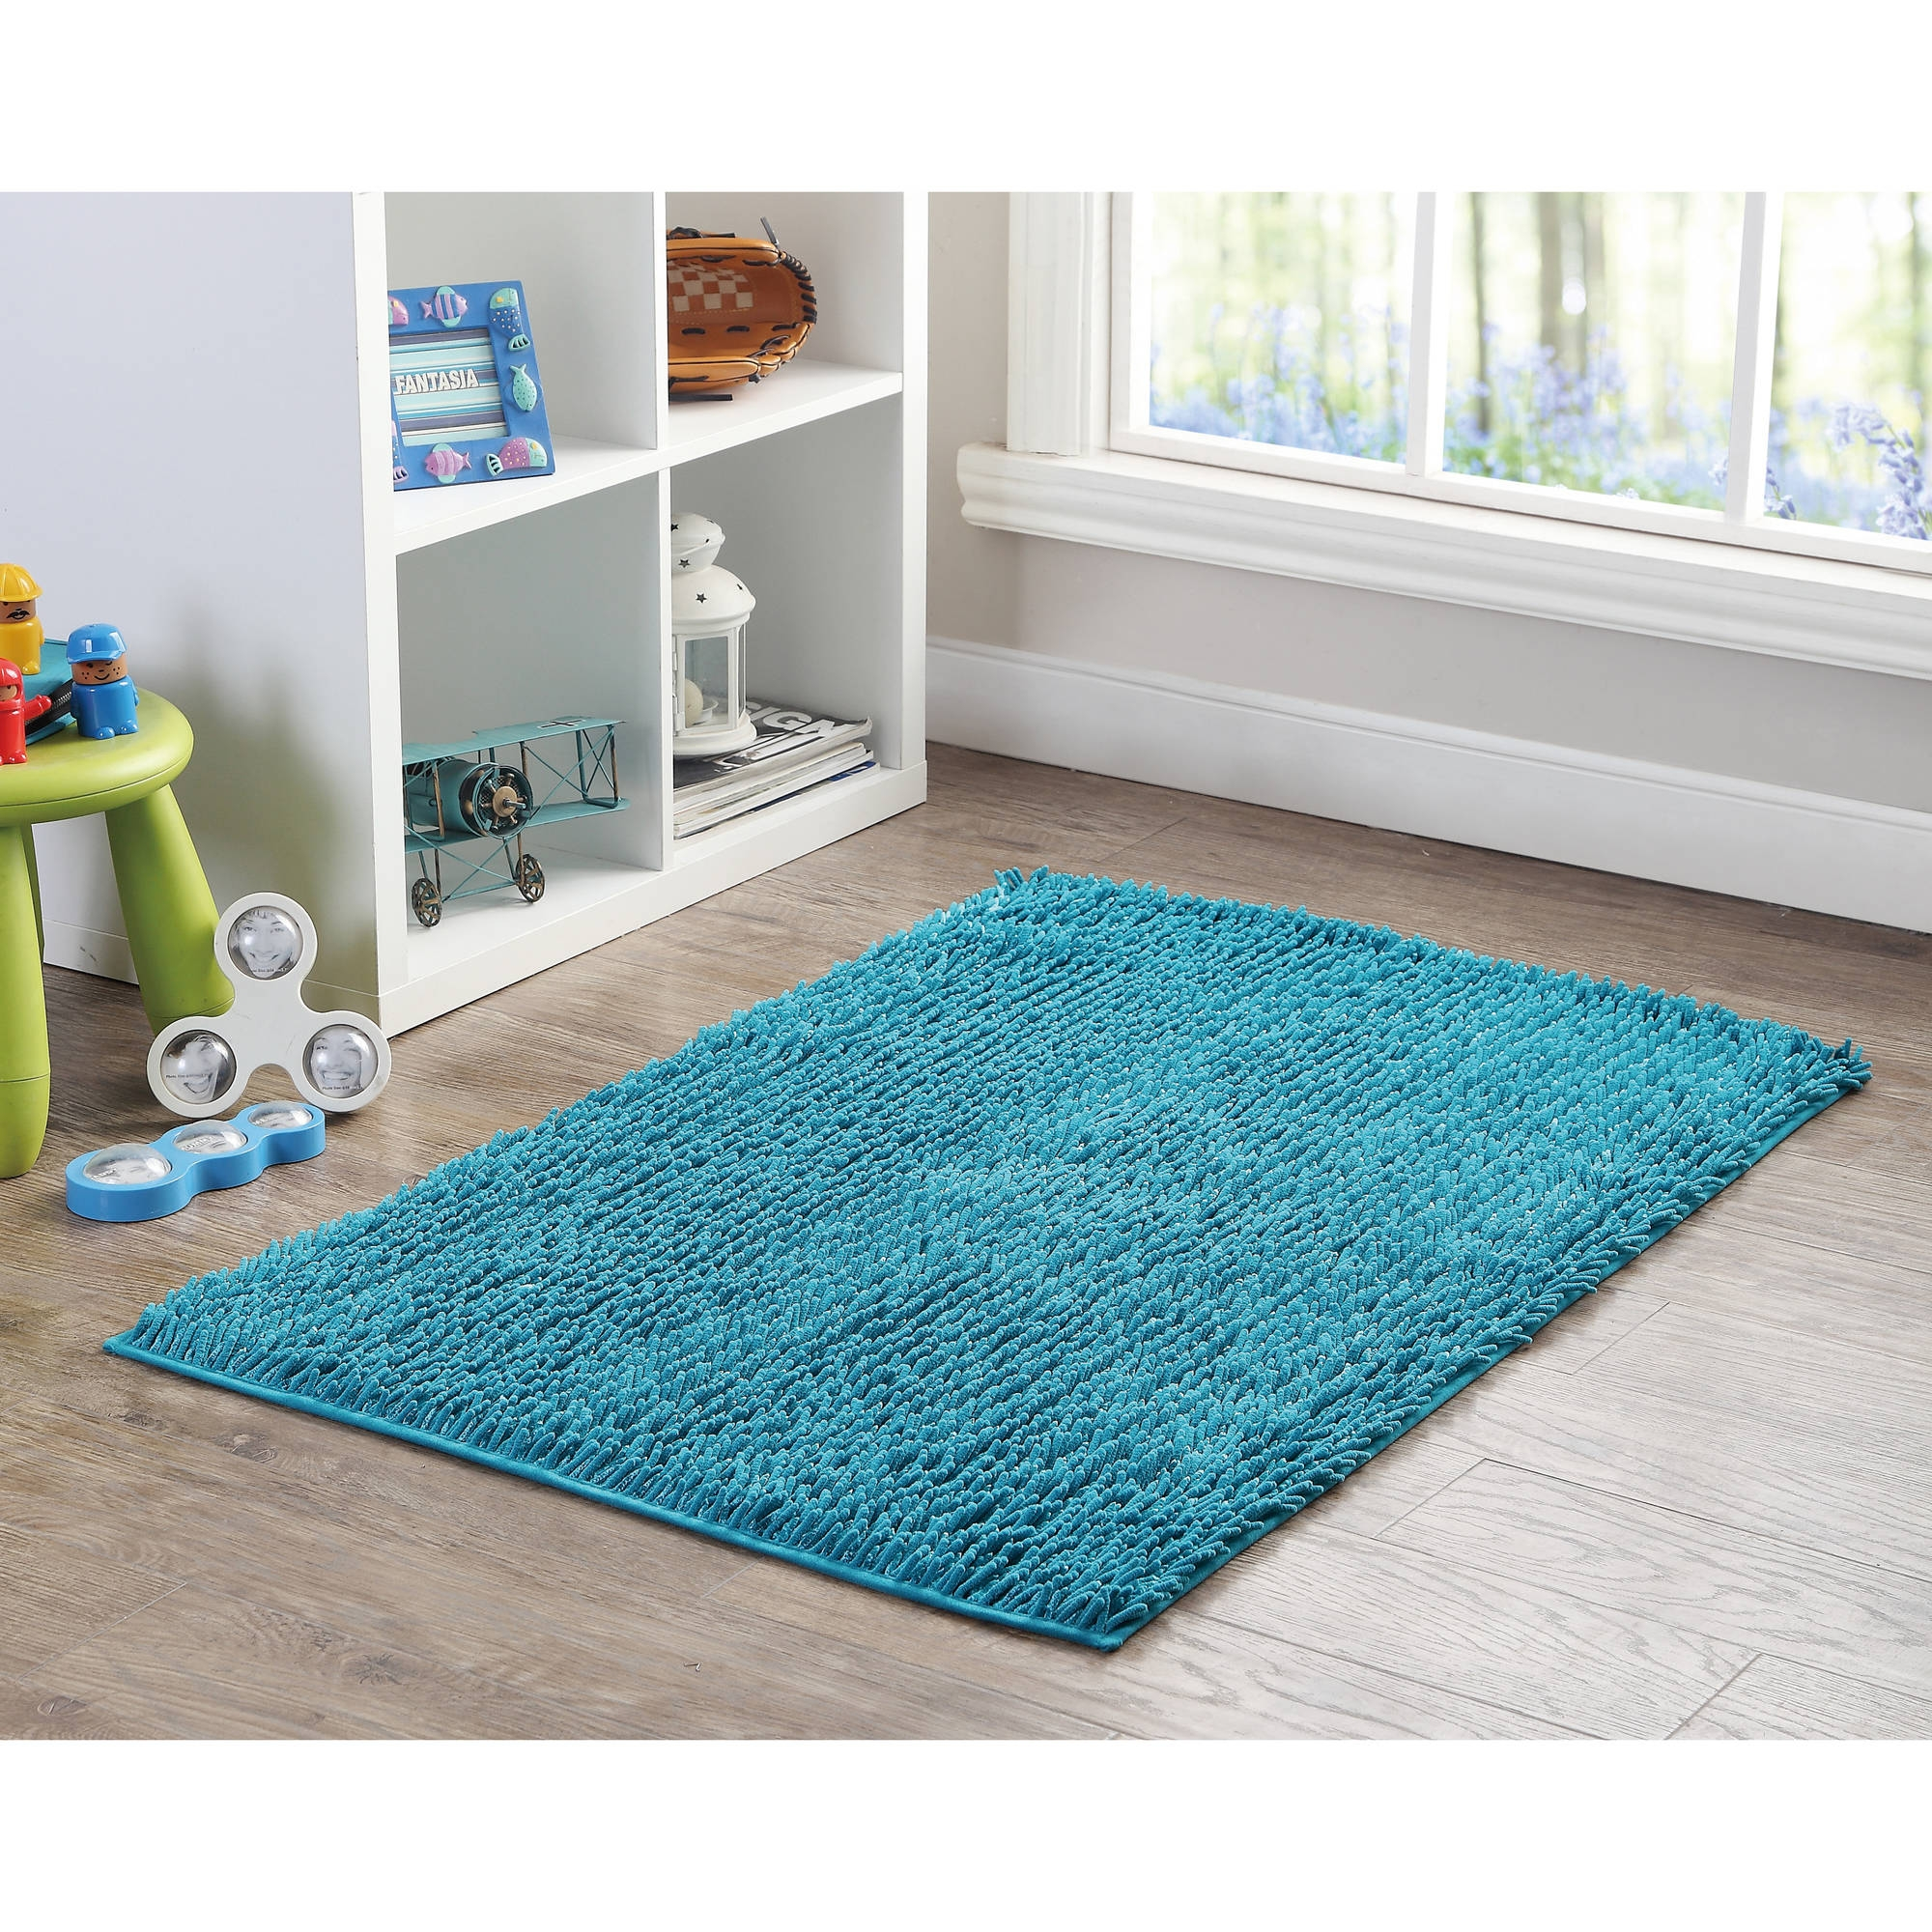 Rugs Cozy 4×6 Area Rugs For Your Interior Floor Accessories Ideas With Regard To Wool Area Rugs 5× (#13 of 15)